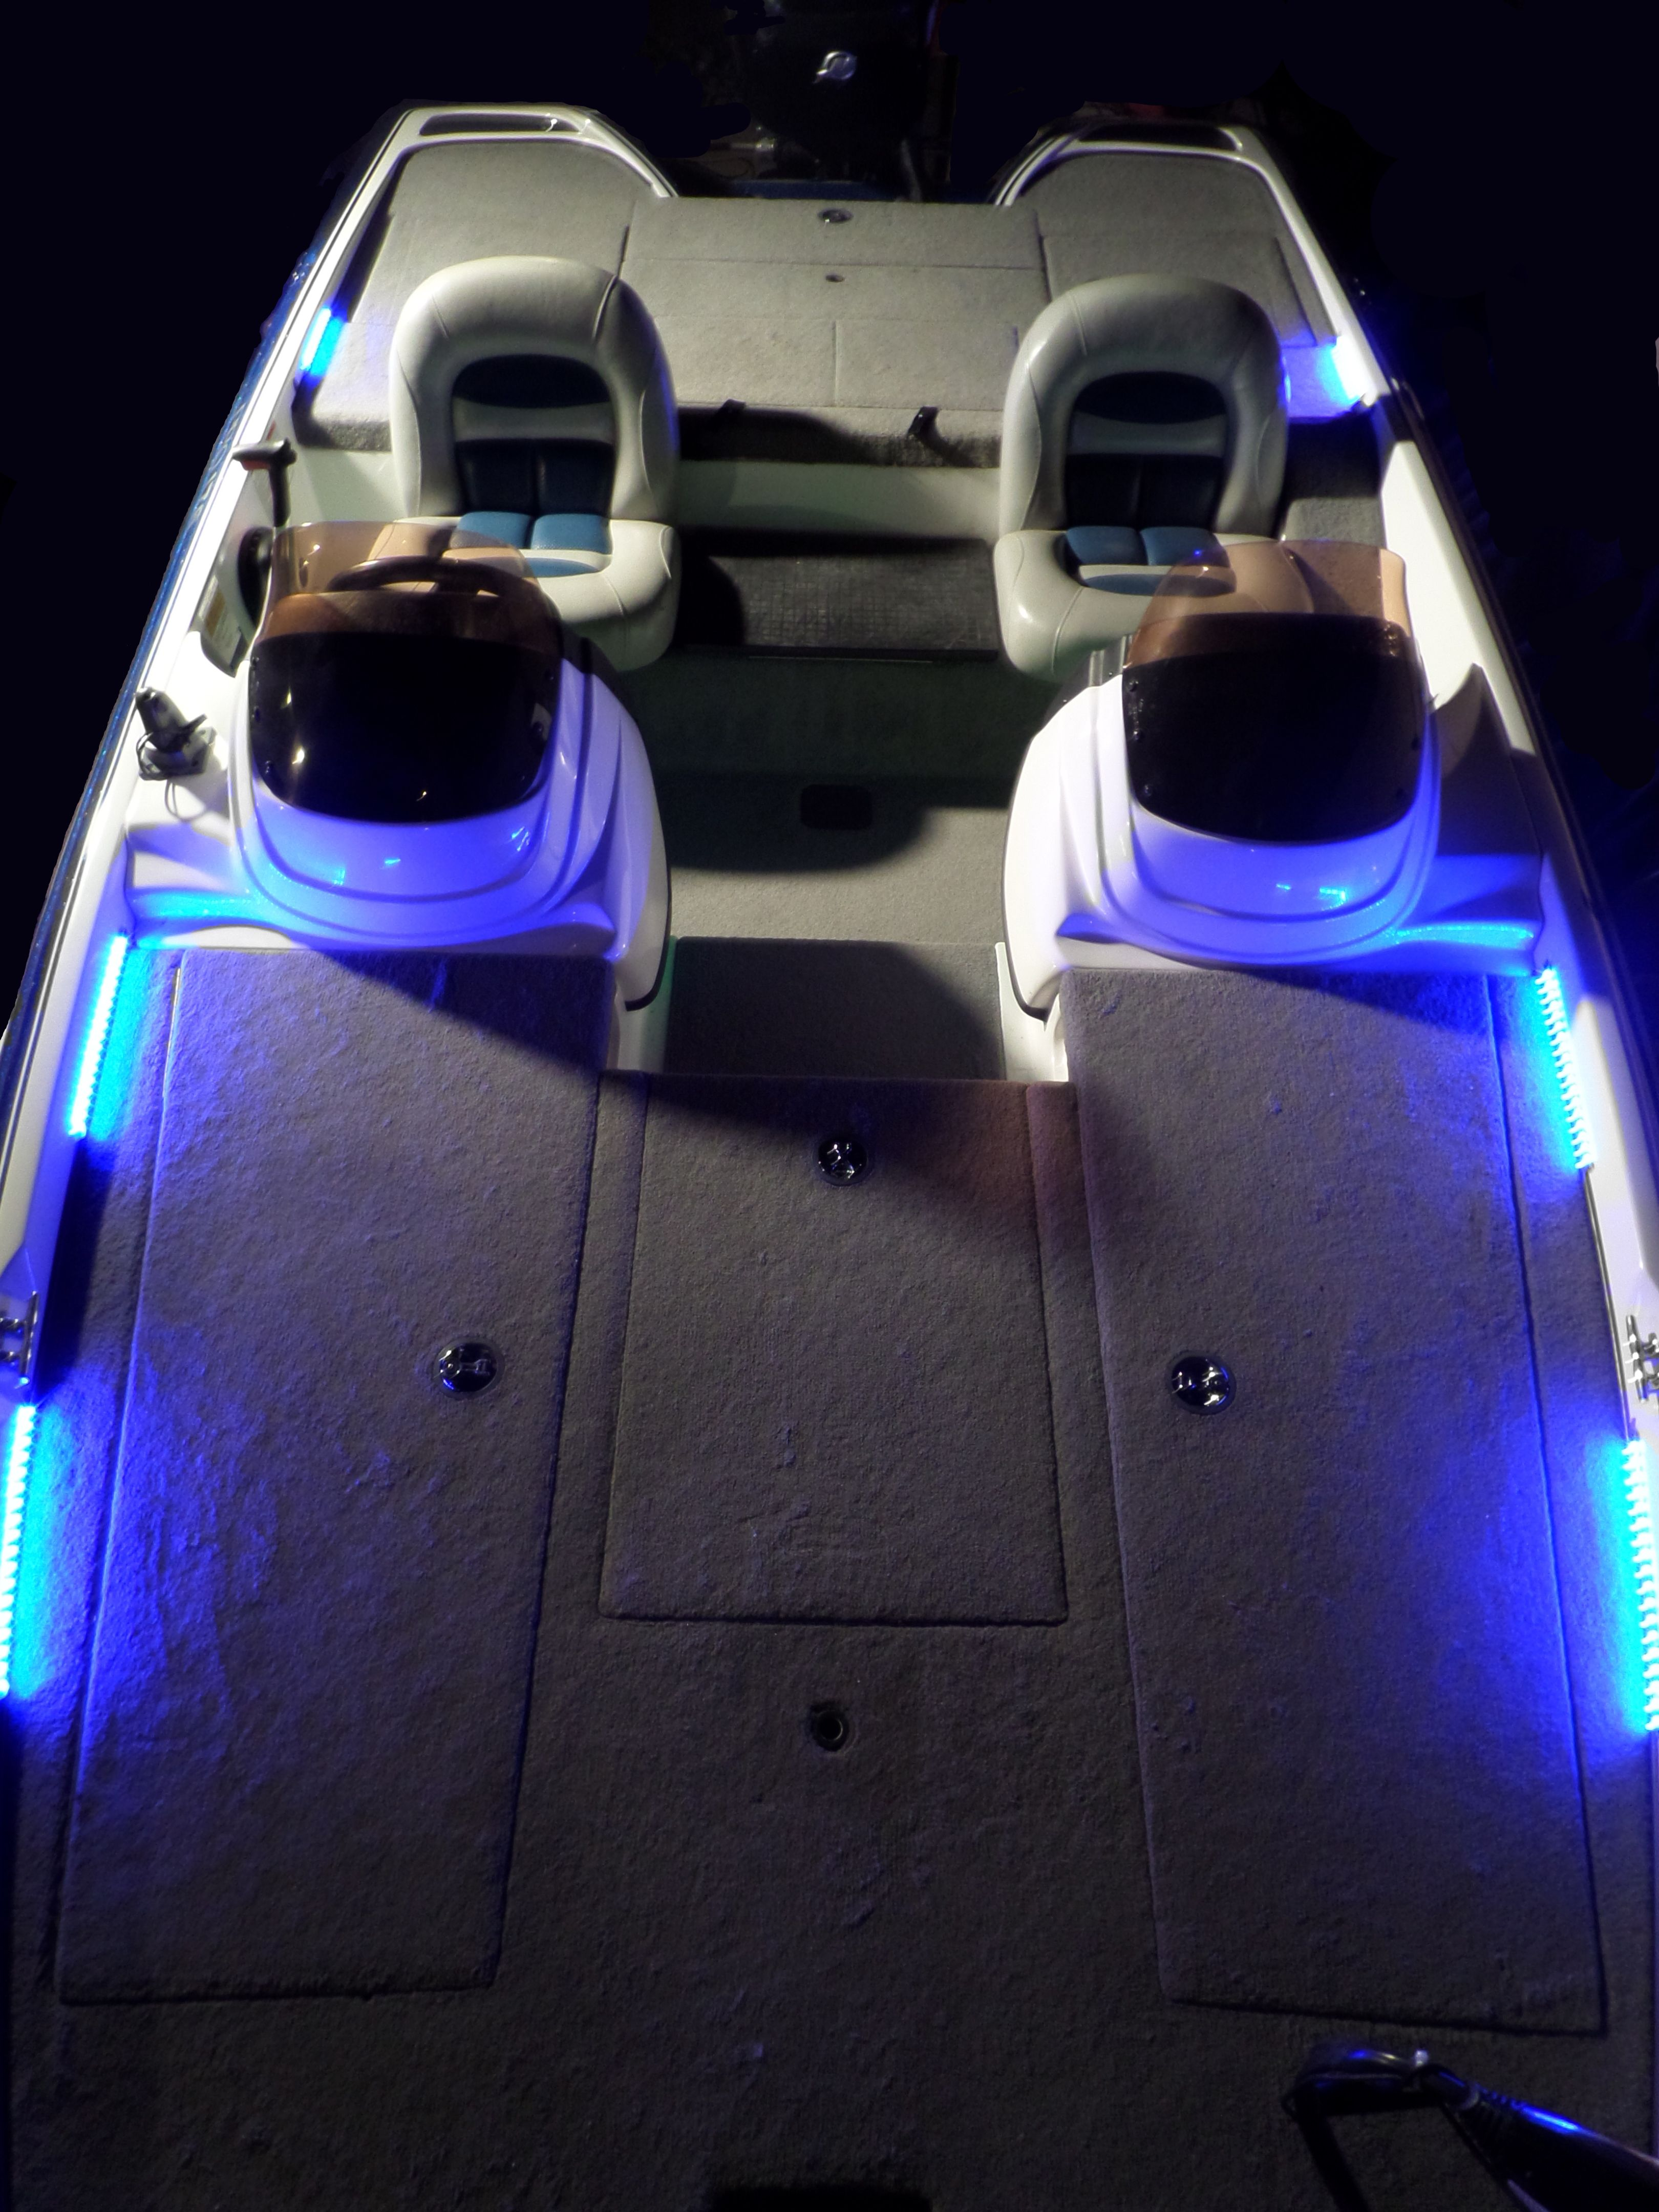 Blue Leds On The Front Deck Of A Pro Craft Bass Boat Available At Smoker Wiring Diagram Waykul Lednet